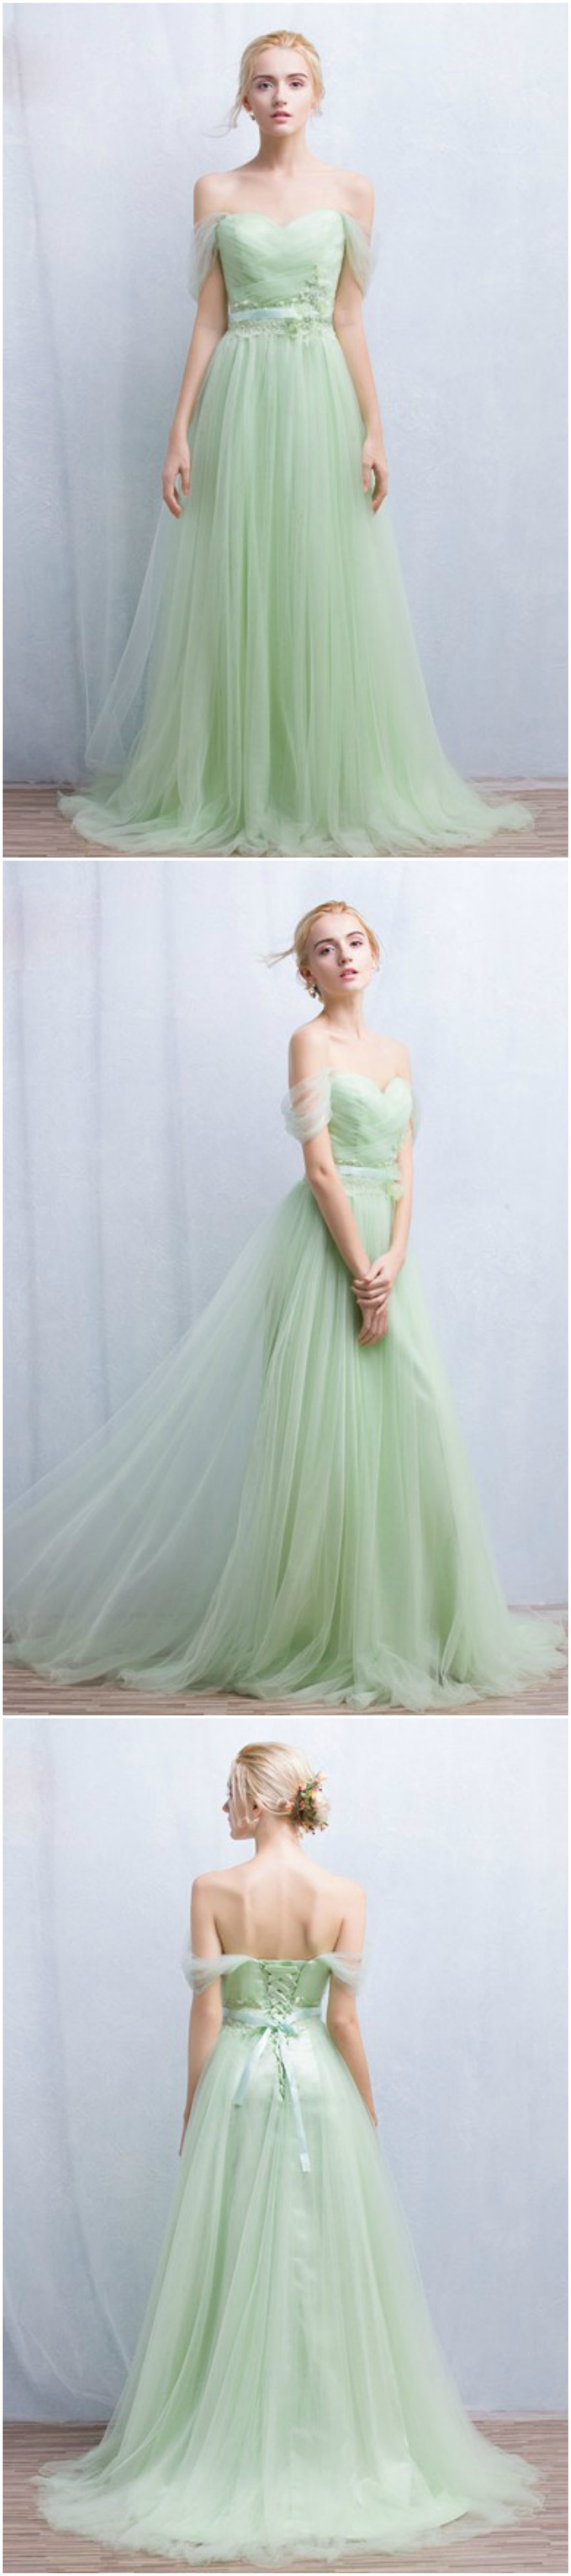 Romantic A-Line Off-the-Shoulder Floor-Length Tulle Bridesmaid ...